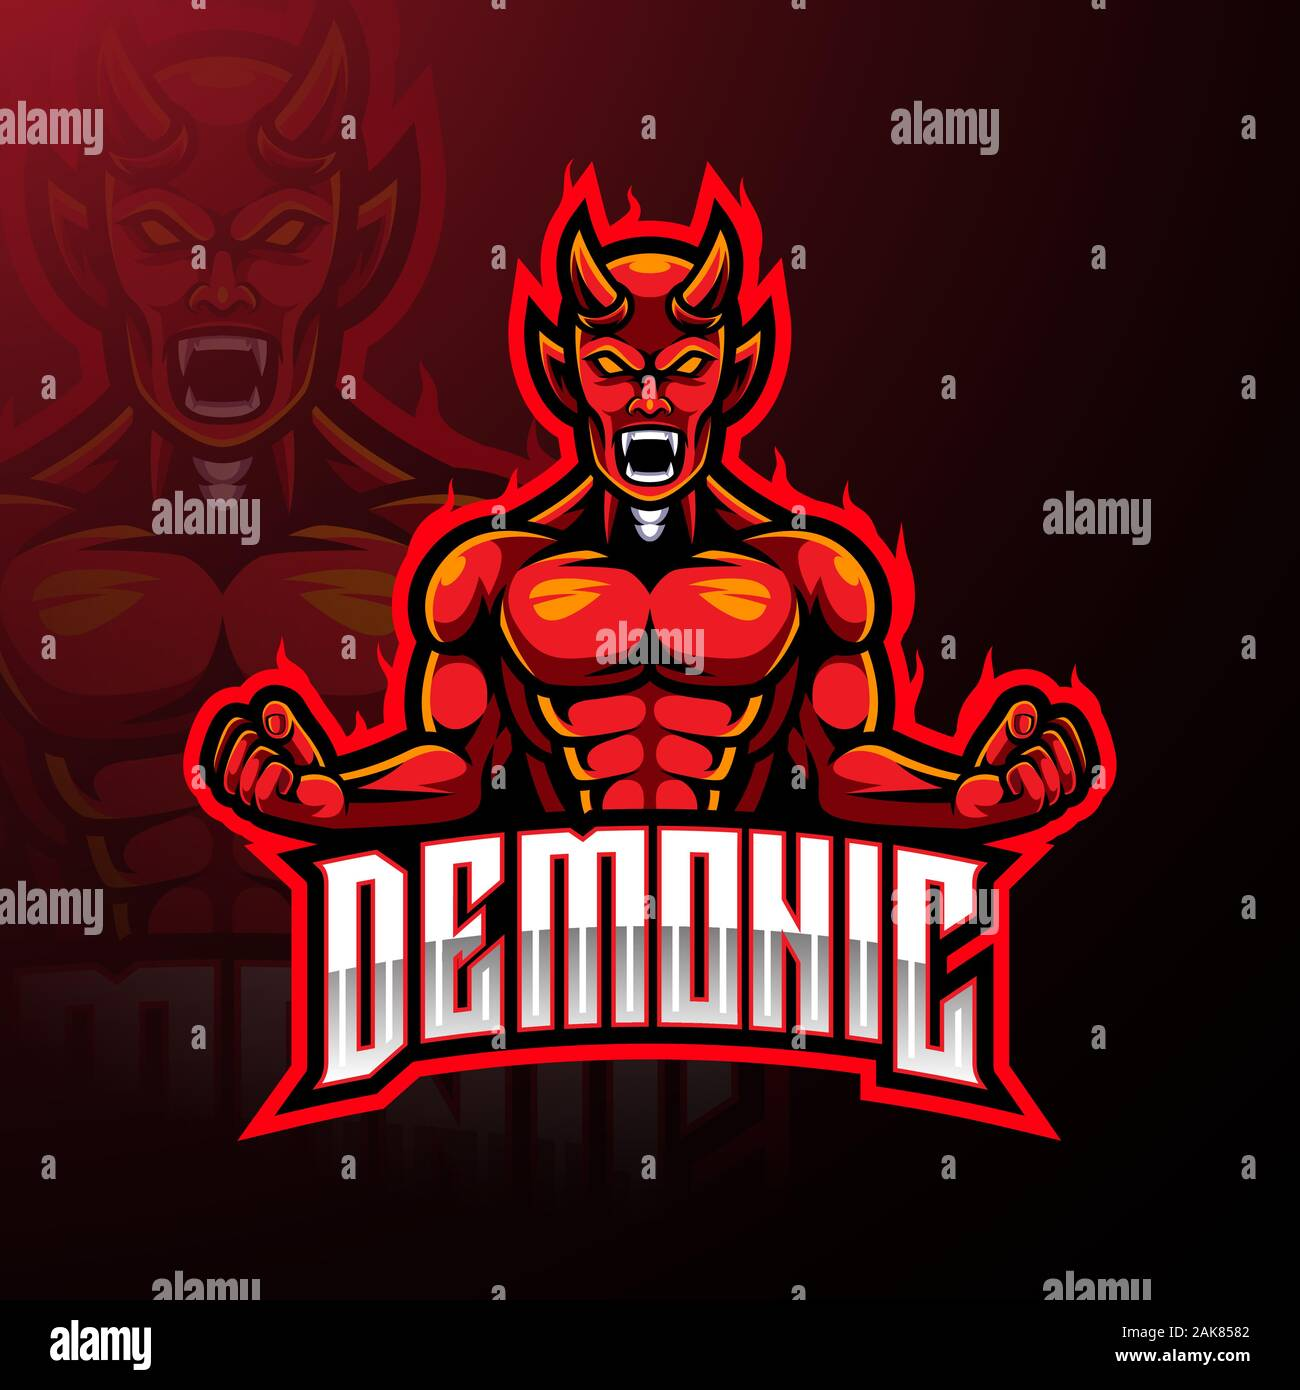 angry red devil esport mascot logo design stock vector image art alamy https www alamy com angry red devil esport mascot logo design image338855218 html